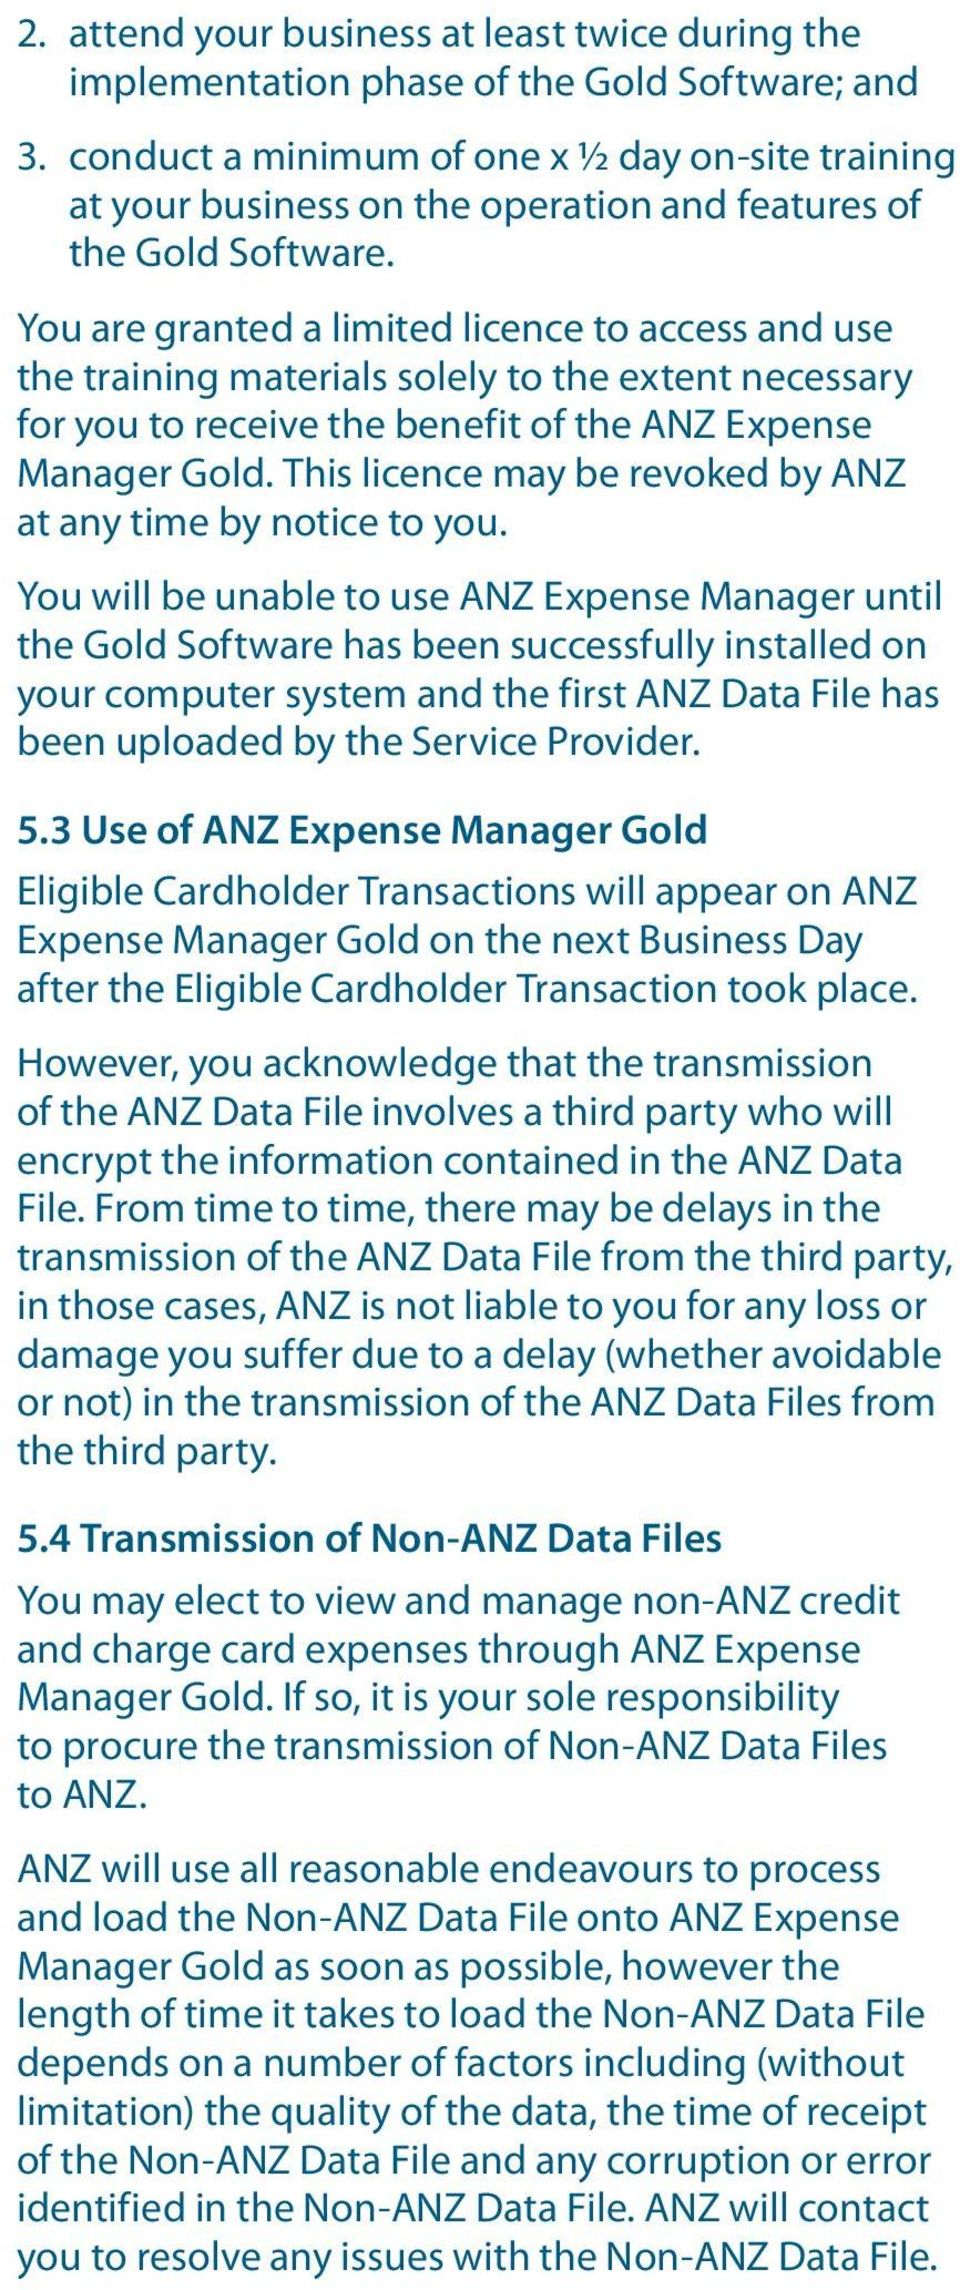 You are granted a limited licence to access and use the training materials solely to the extent necessary for you to receive the benefit of the ANZ Expense Manager Gold.